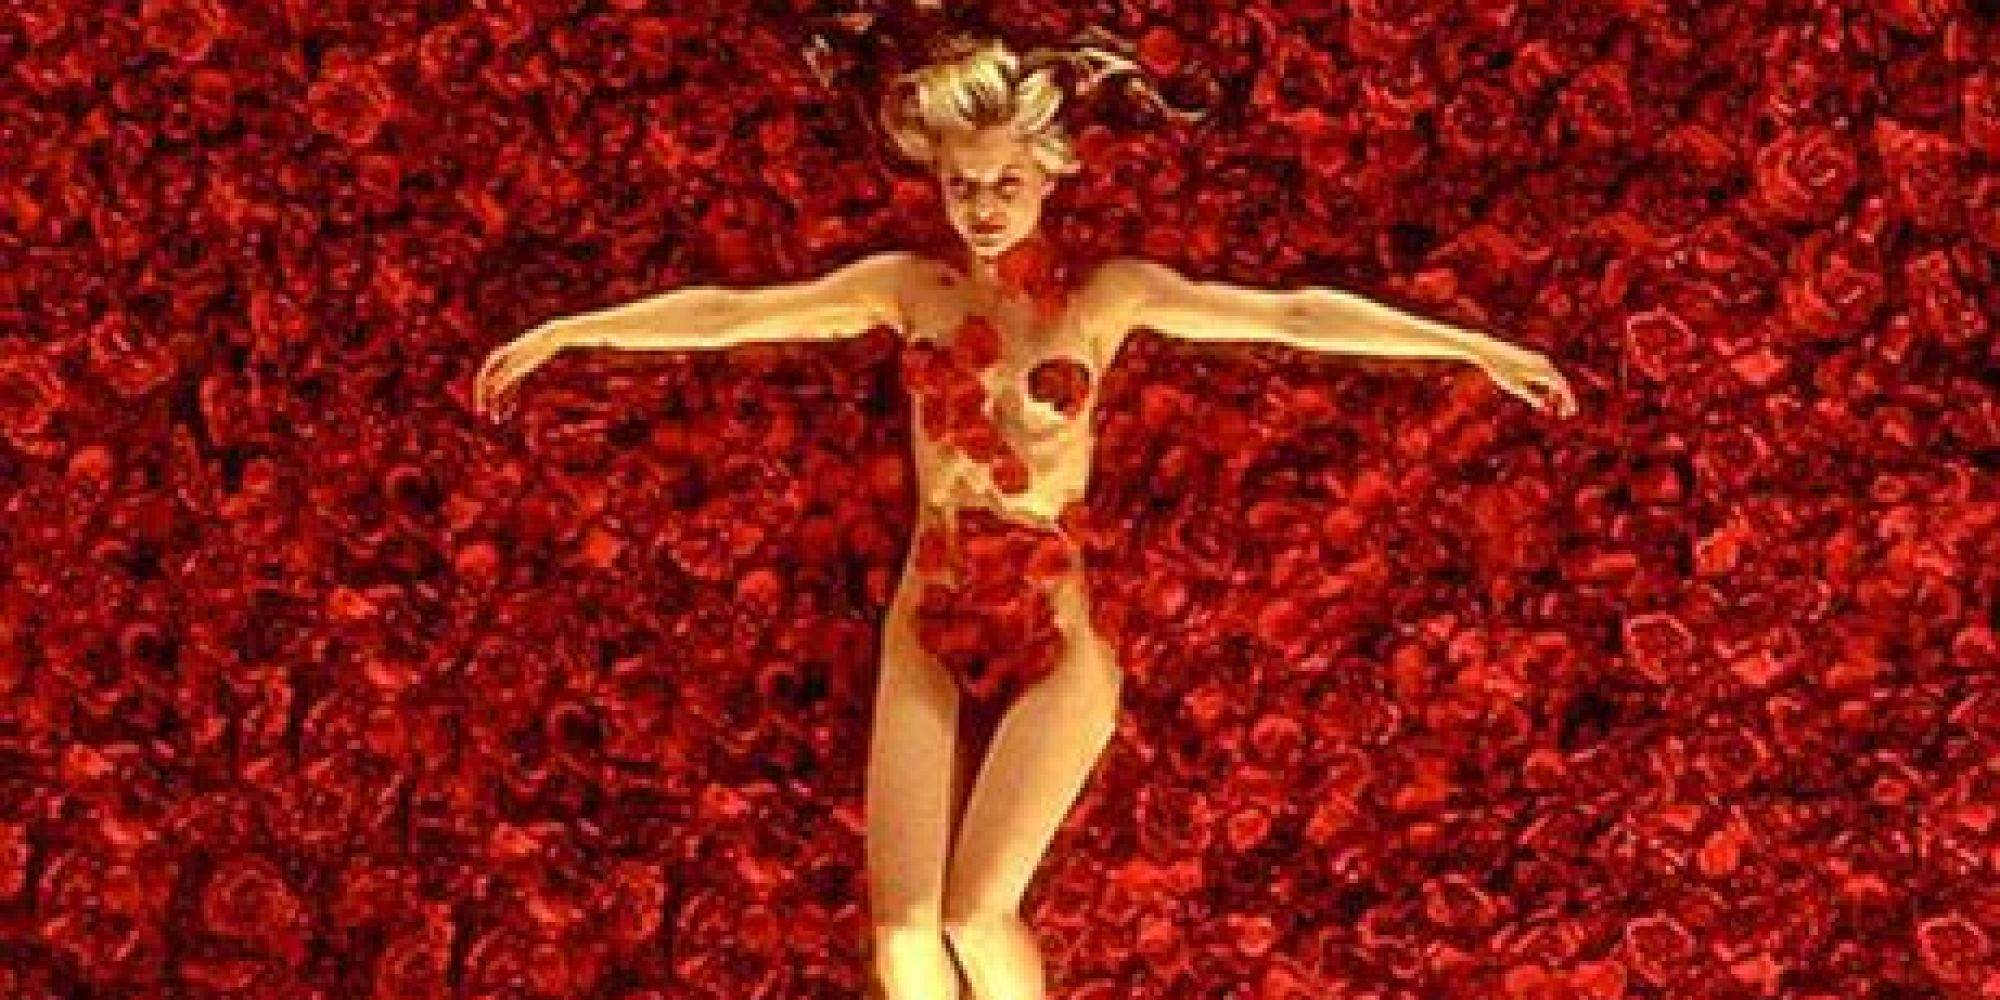 techniques developing character in american beauty American beauty is tour de force cinema sam mendes' brilliant debut feature depicts a web of characters who yearn for their own 'american dream' - yet, in the end, only one character truly attains it.